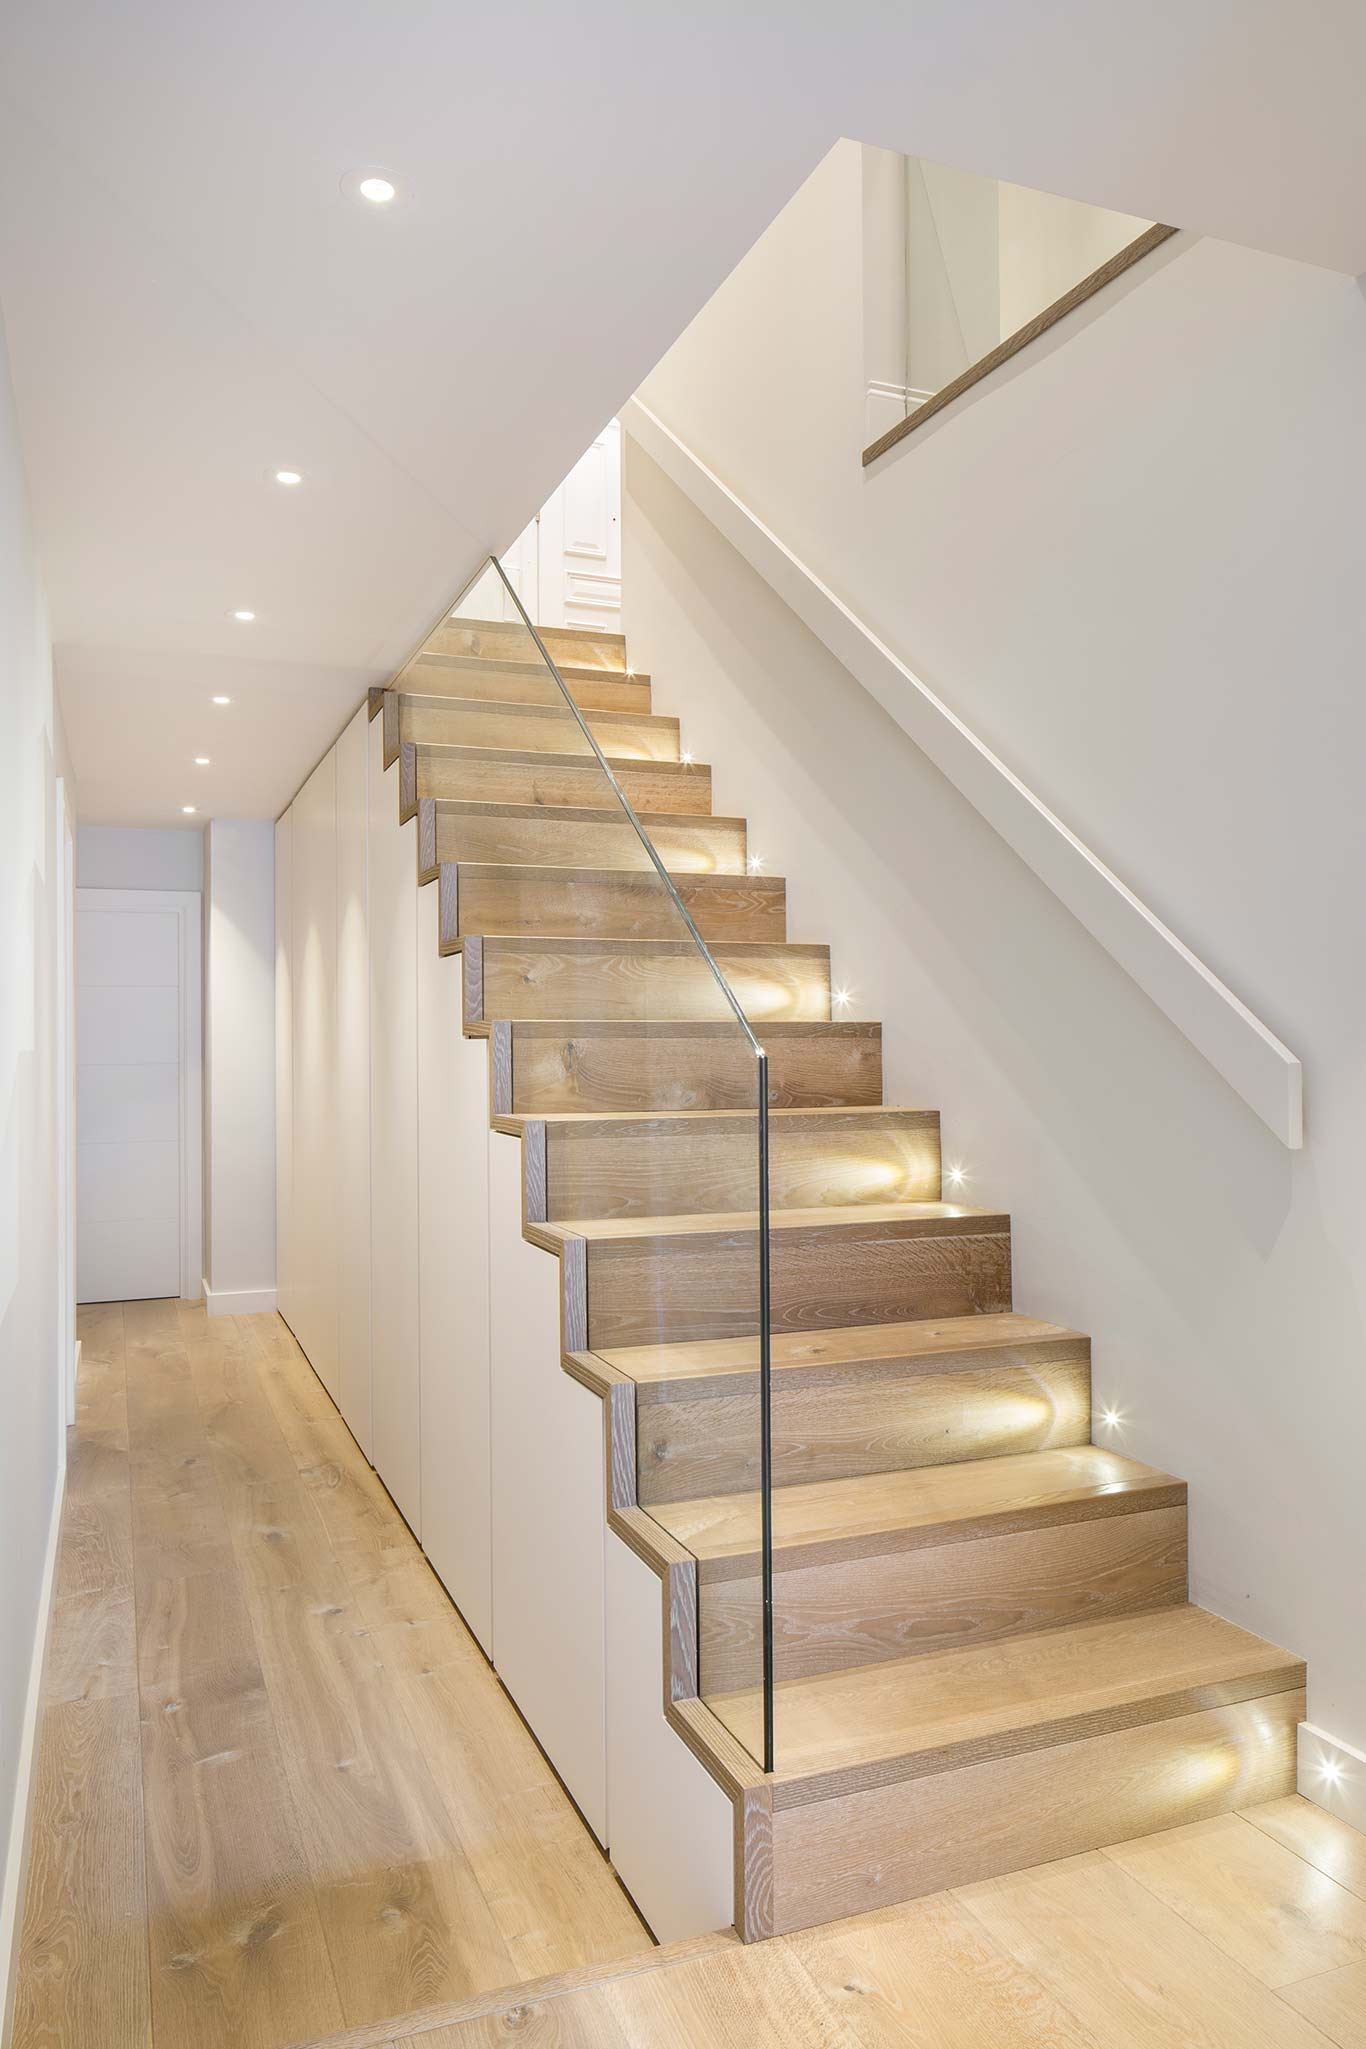 Canfield Gardens Wooden Staircase And Floors Glass Balustrade